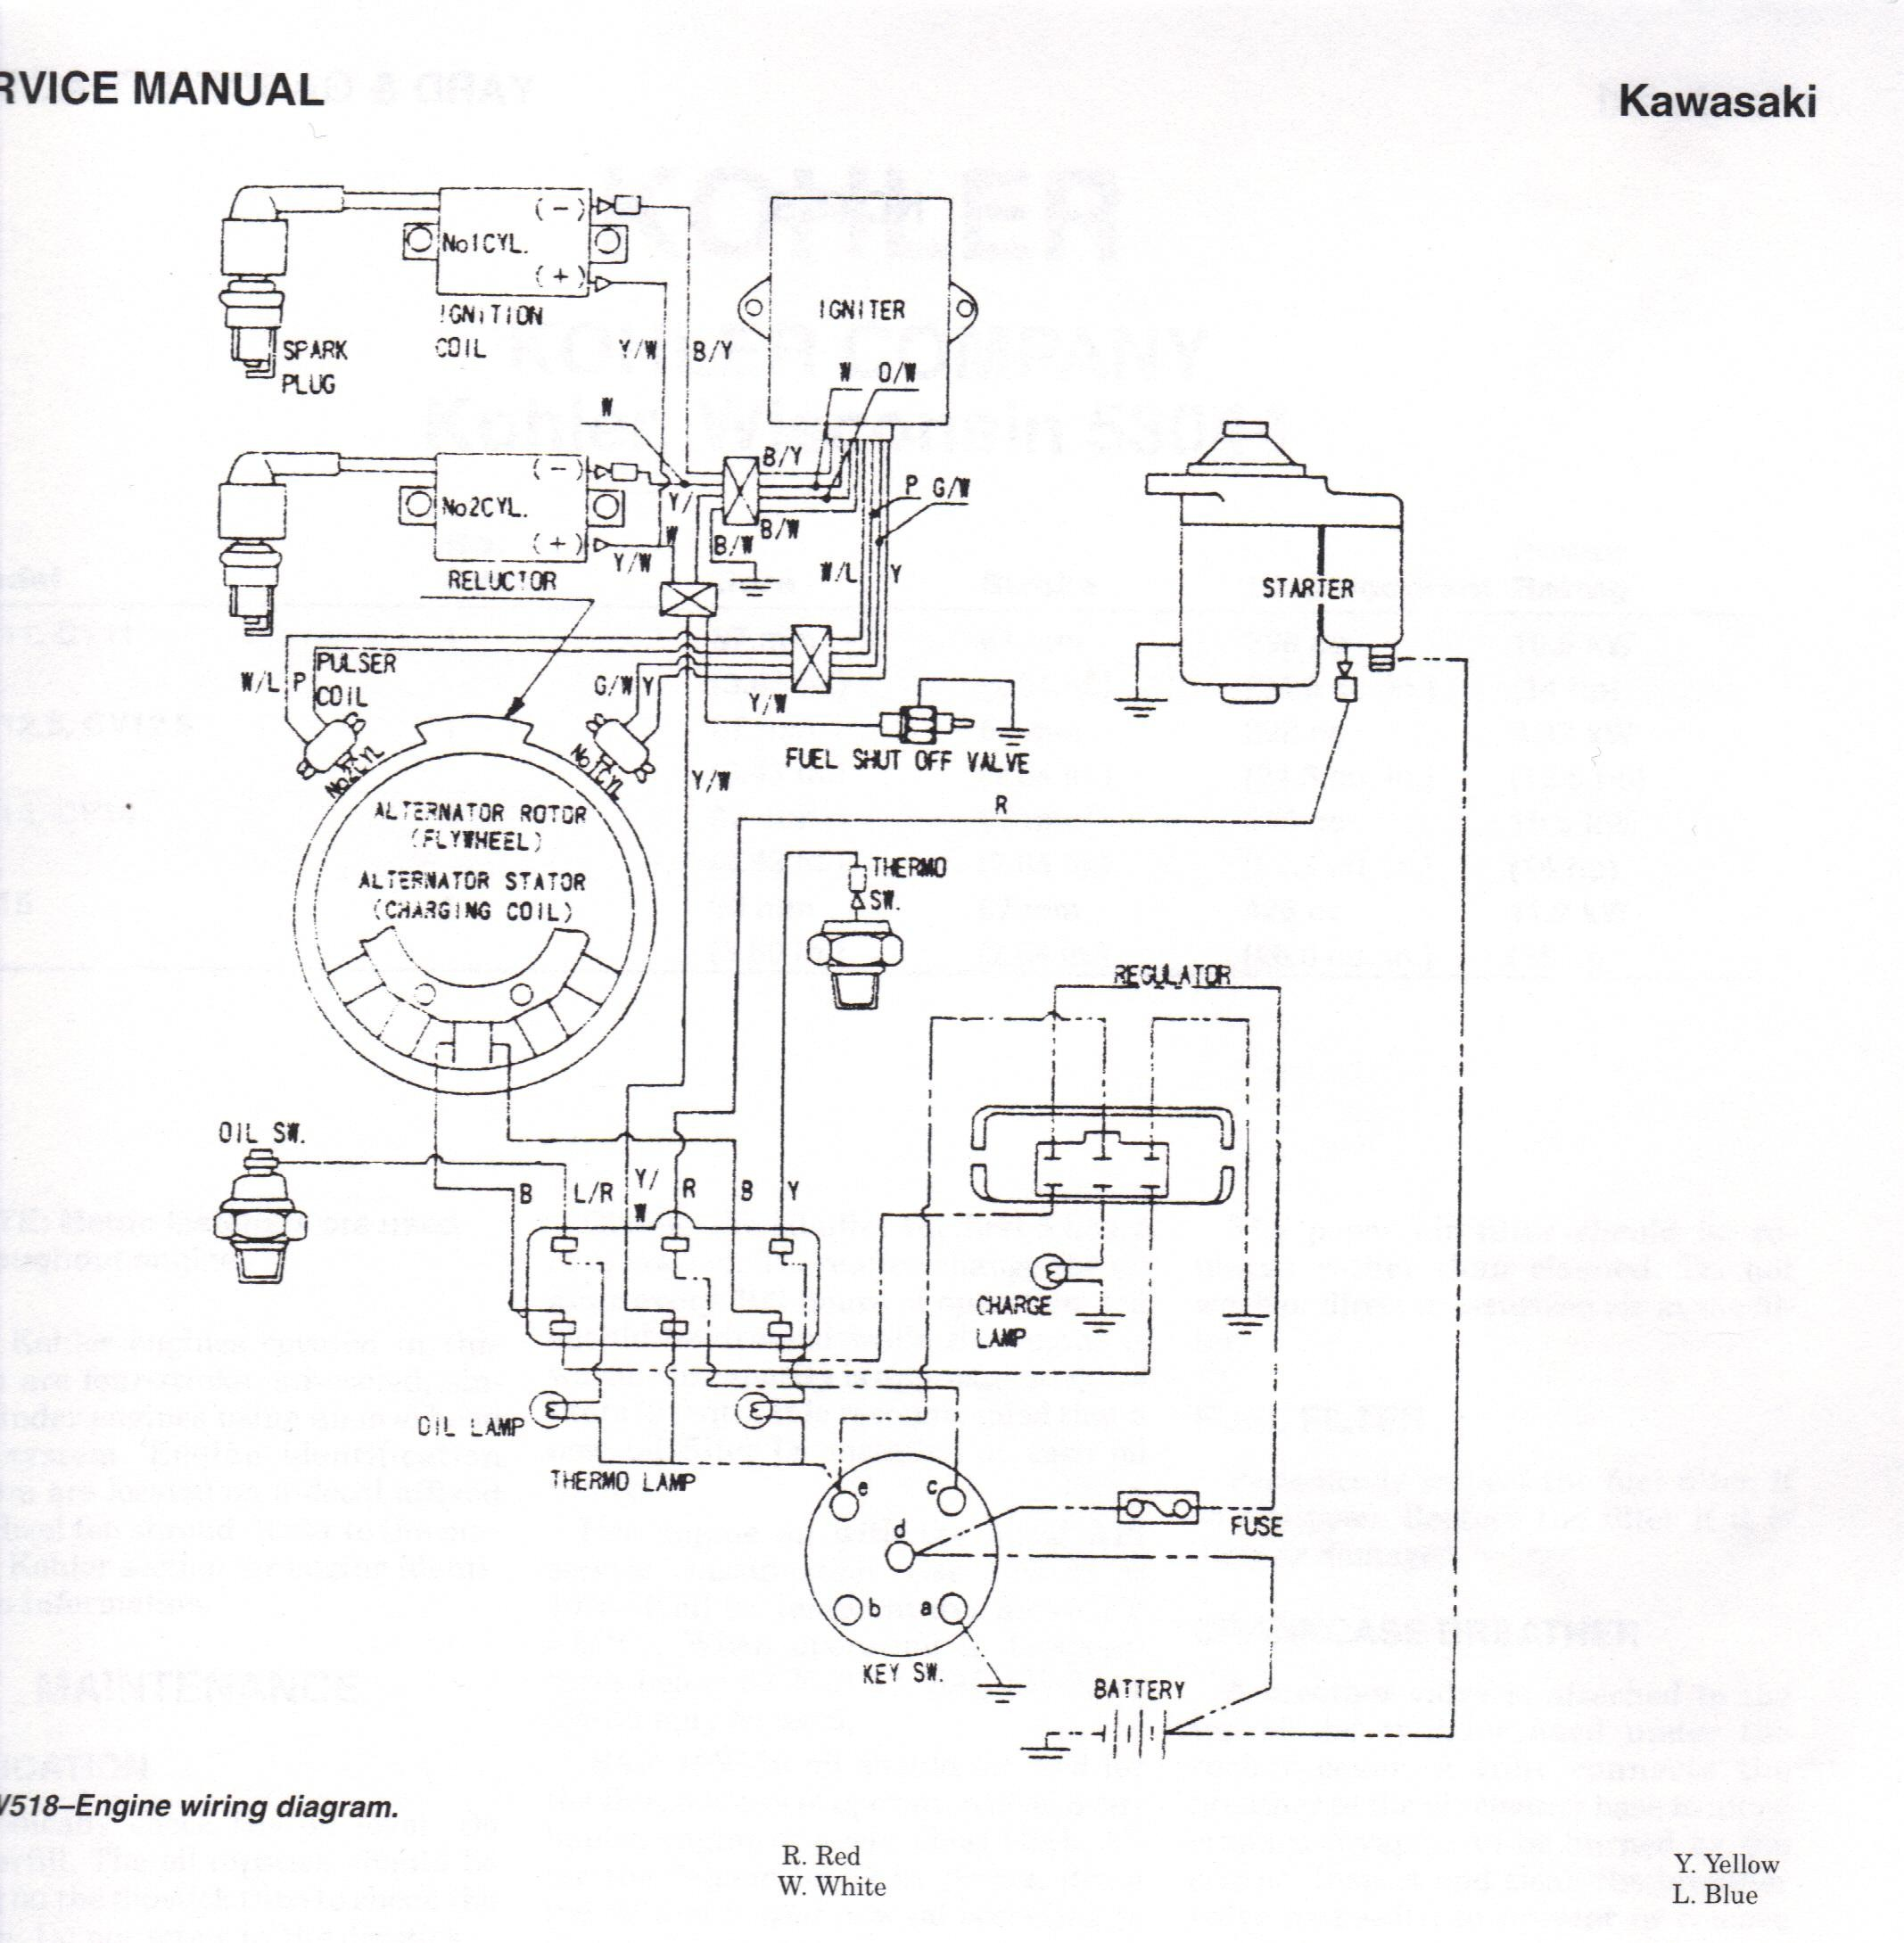 john deere utility gator 4x2 wiring diagram electrical diagrams rh woollenkiwi co uk